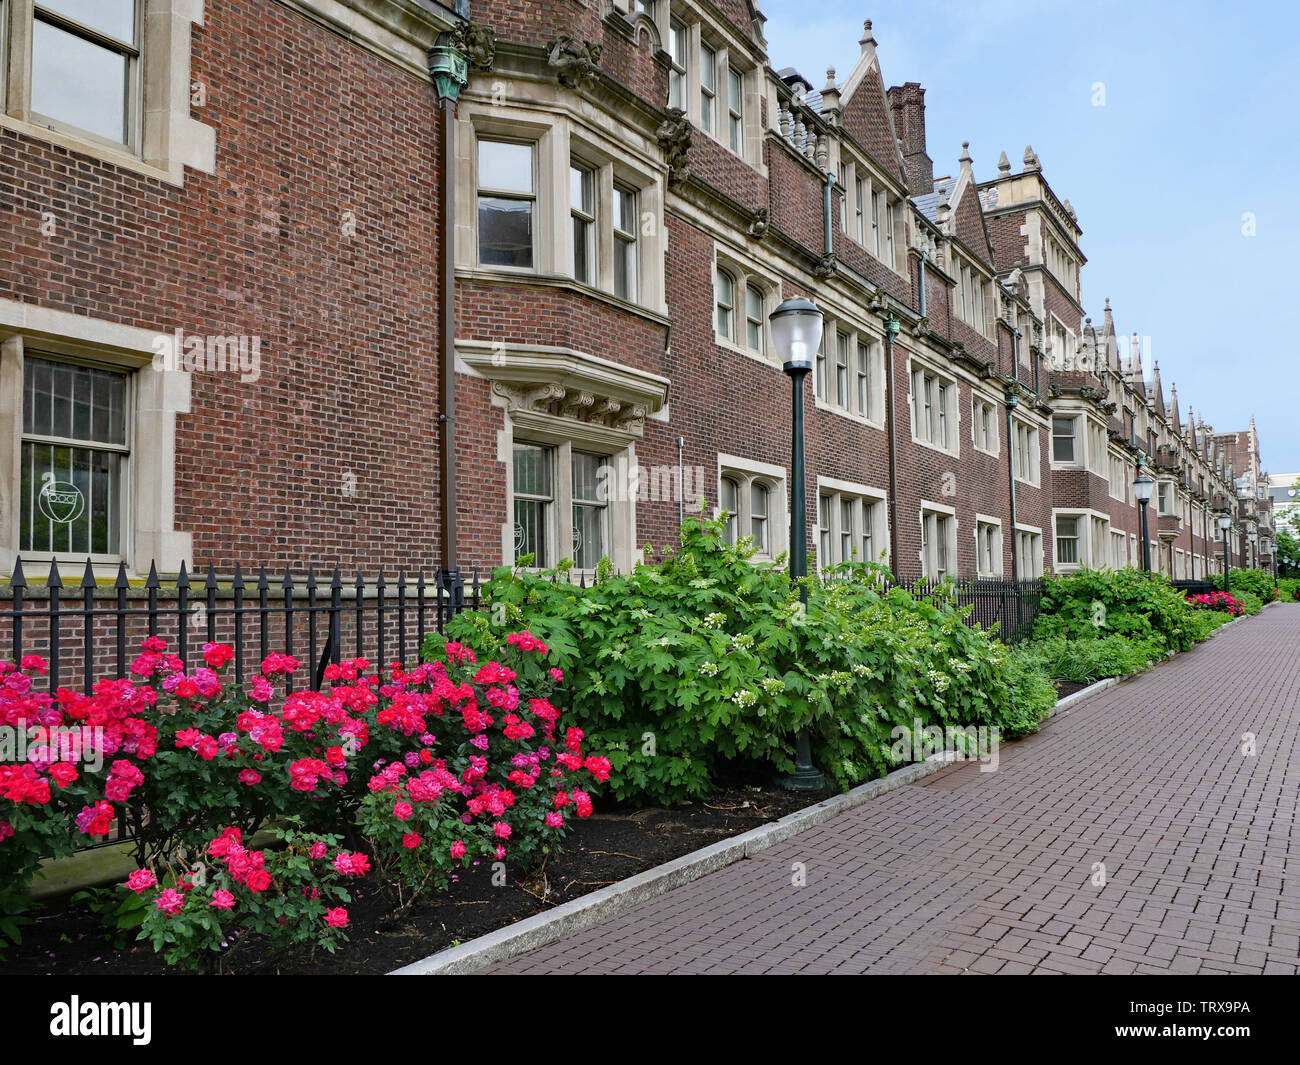 brick student residence building with gothic stylistic elements, such as bay windows and stone frames around windows - Stock Image